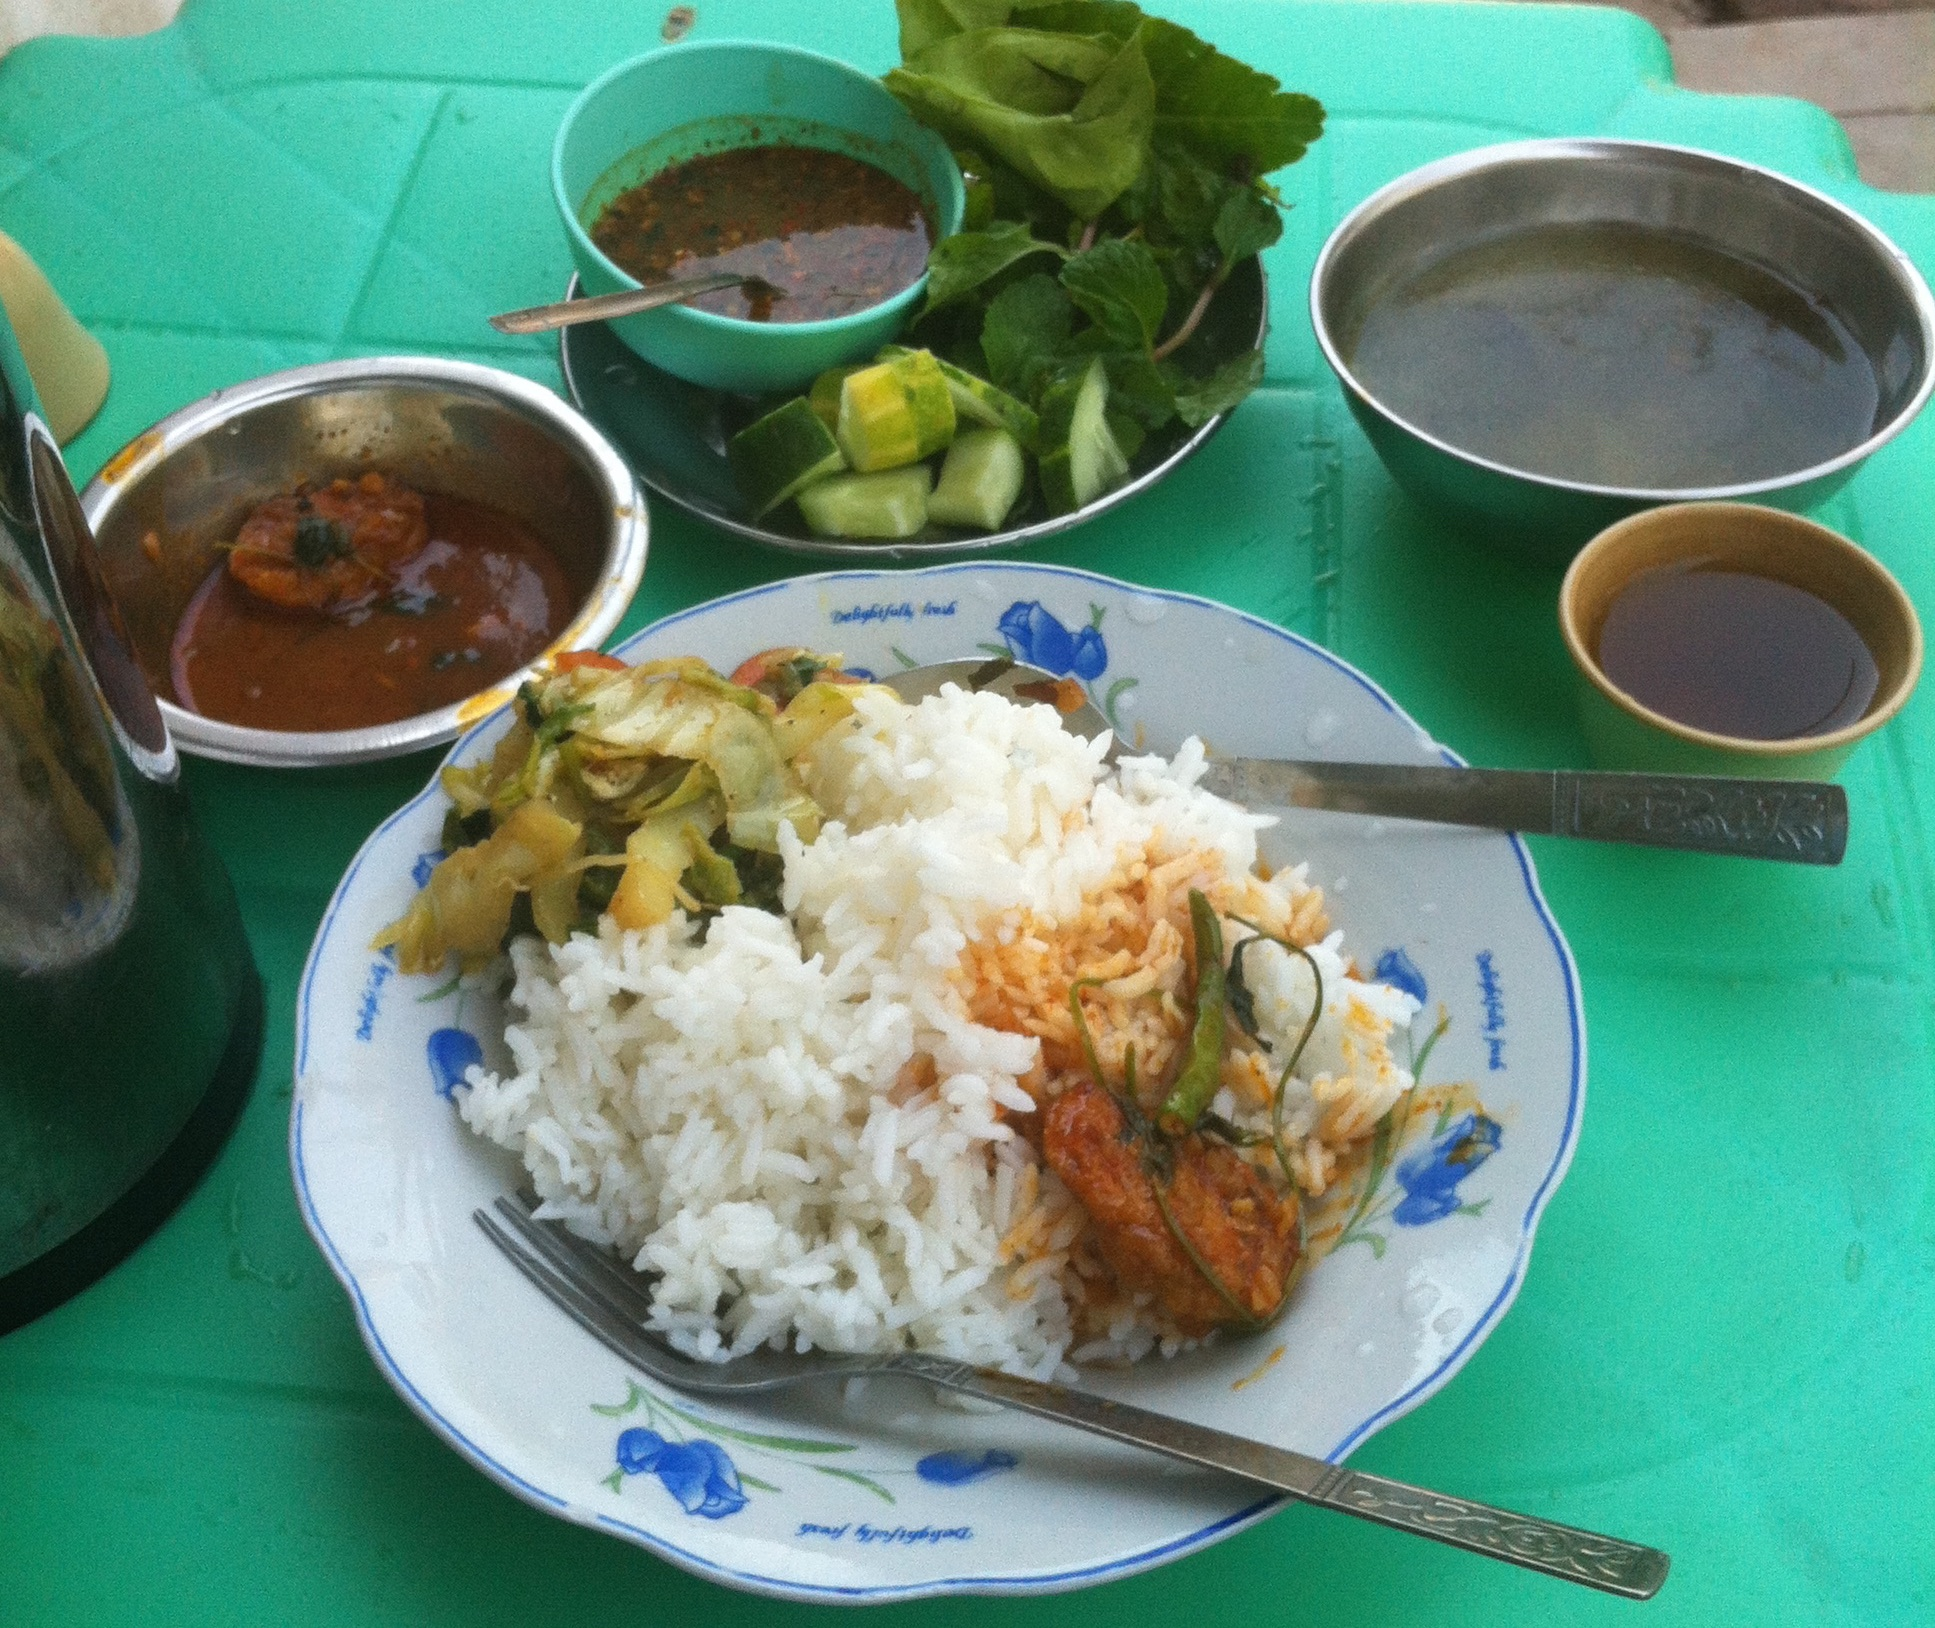 Curried fish filets and all the trimmings: cabbage, vegetable tray with spicy fish-sauce dip, sour greens soup, and tea. $1